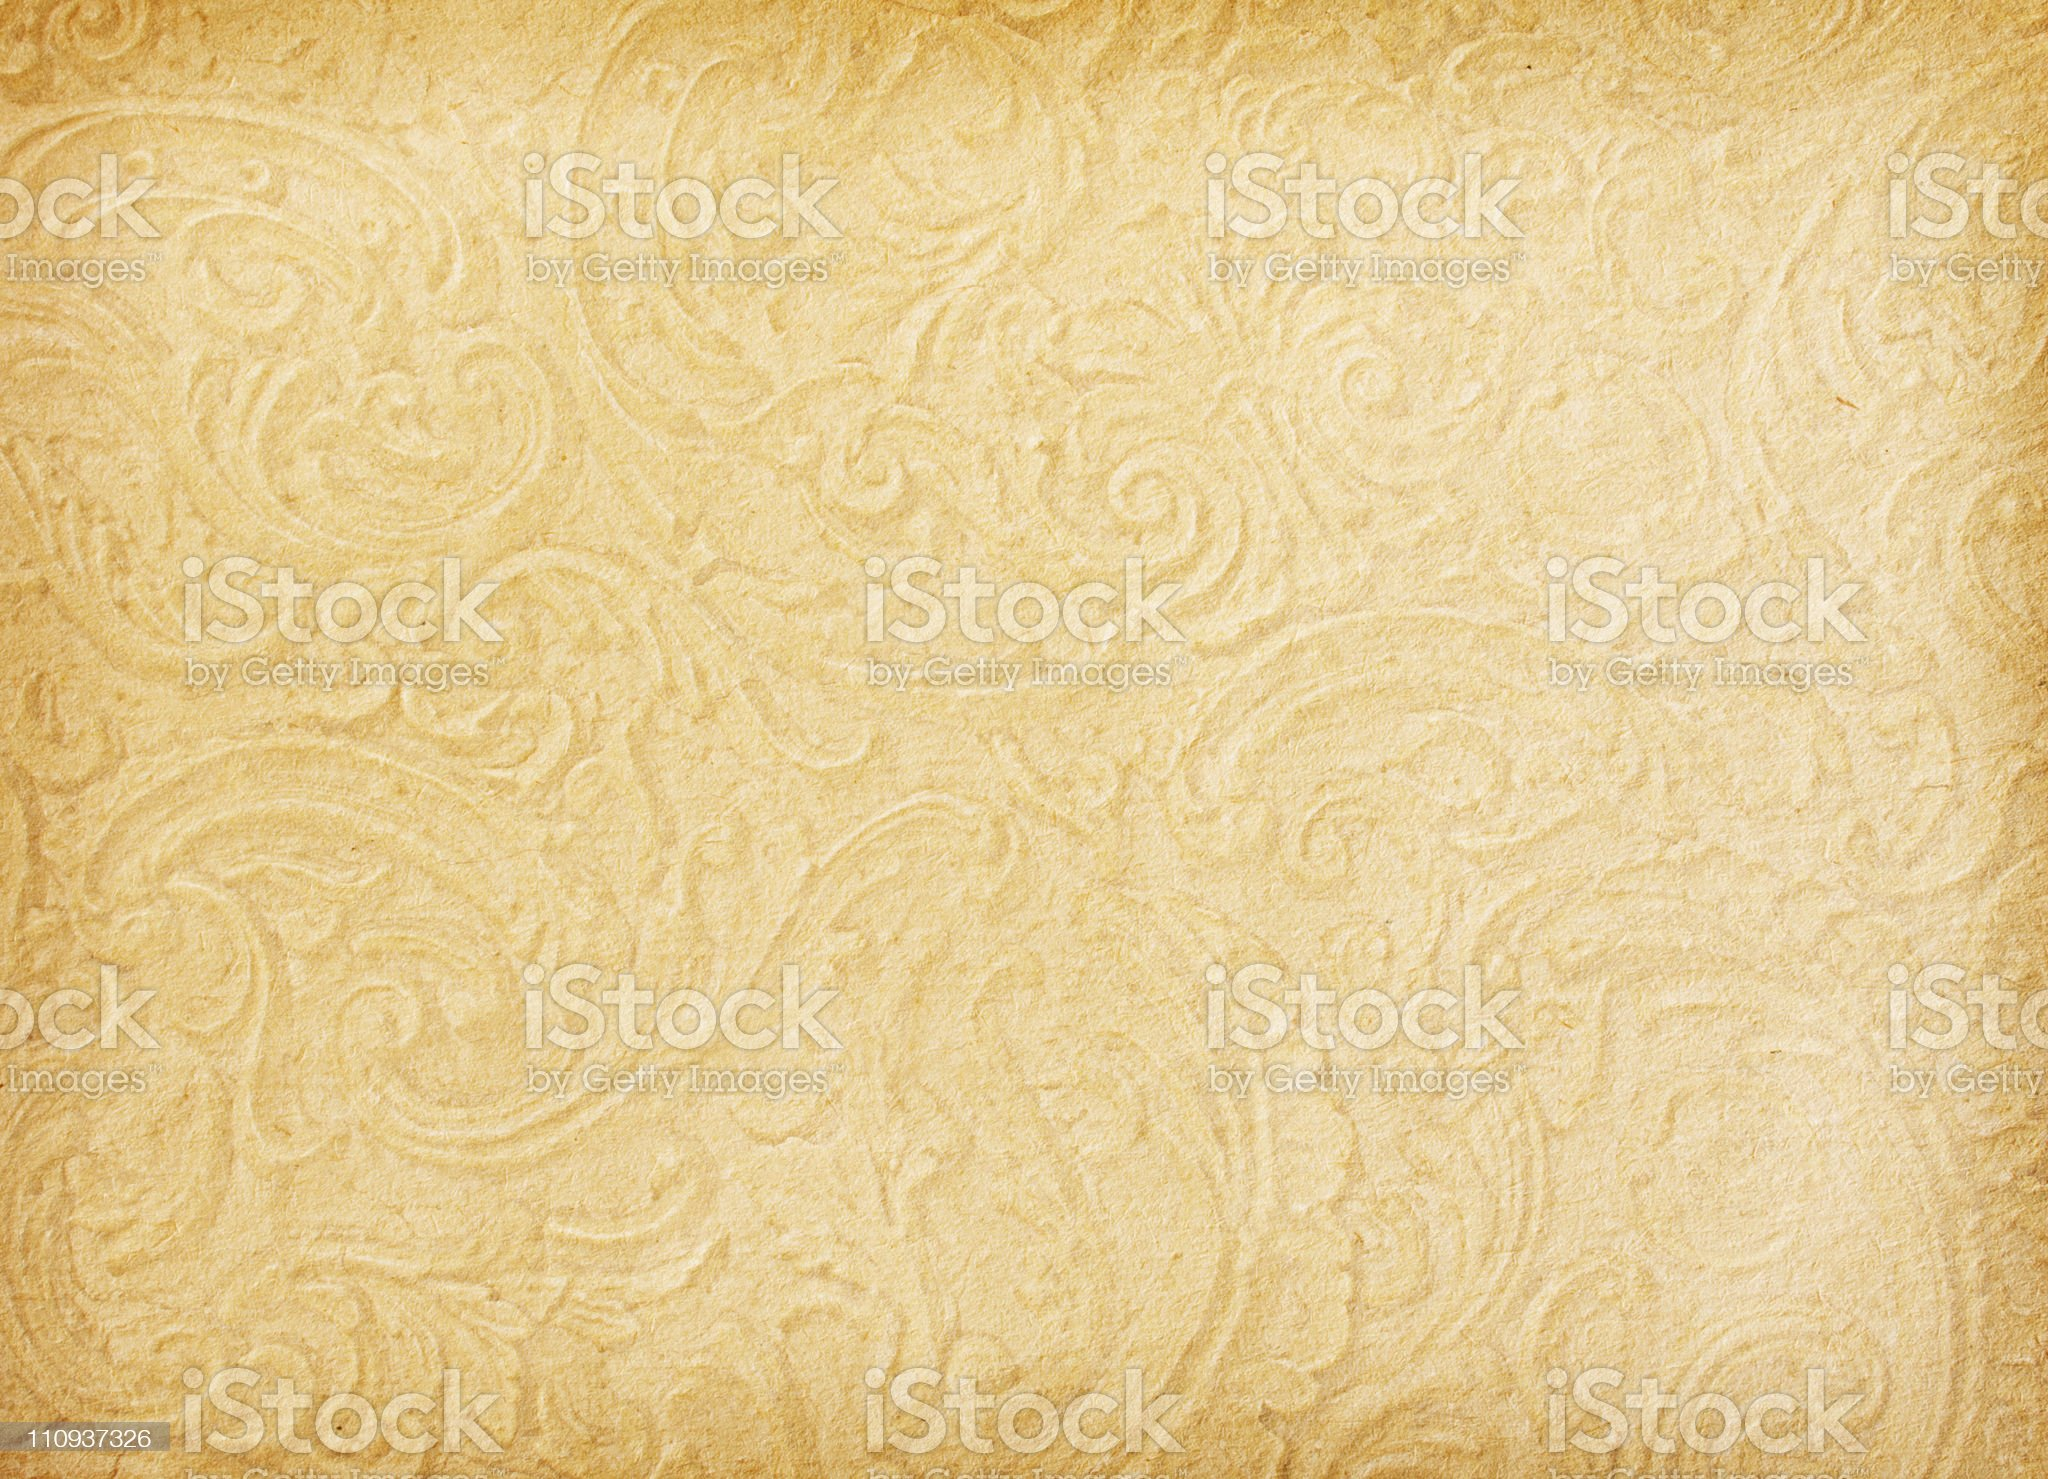 Old worn paper royalty-free stock photo